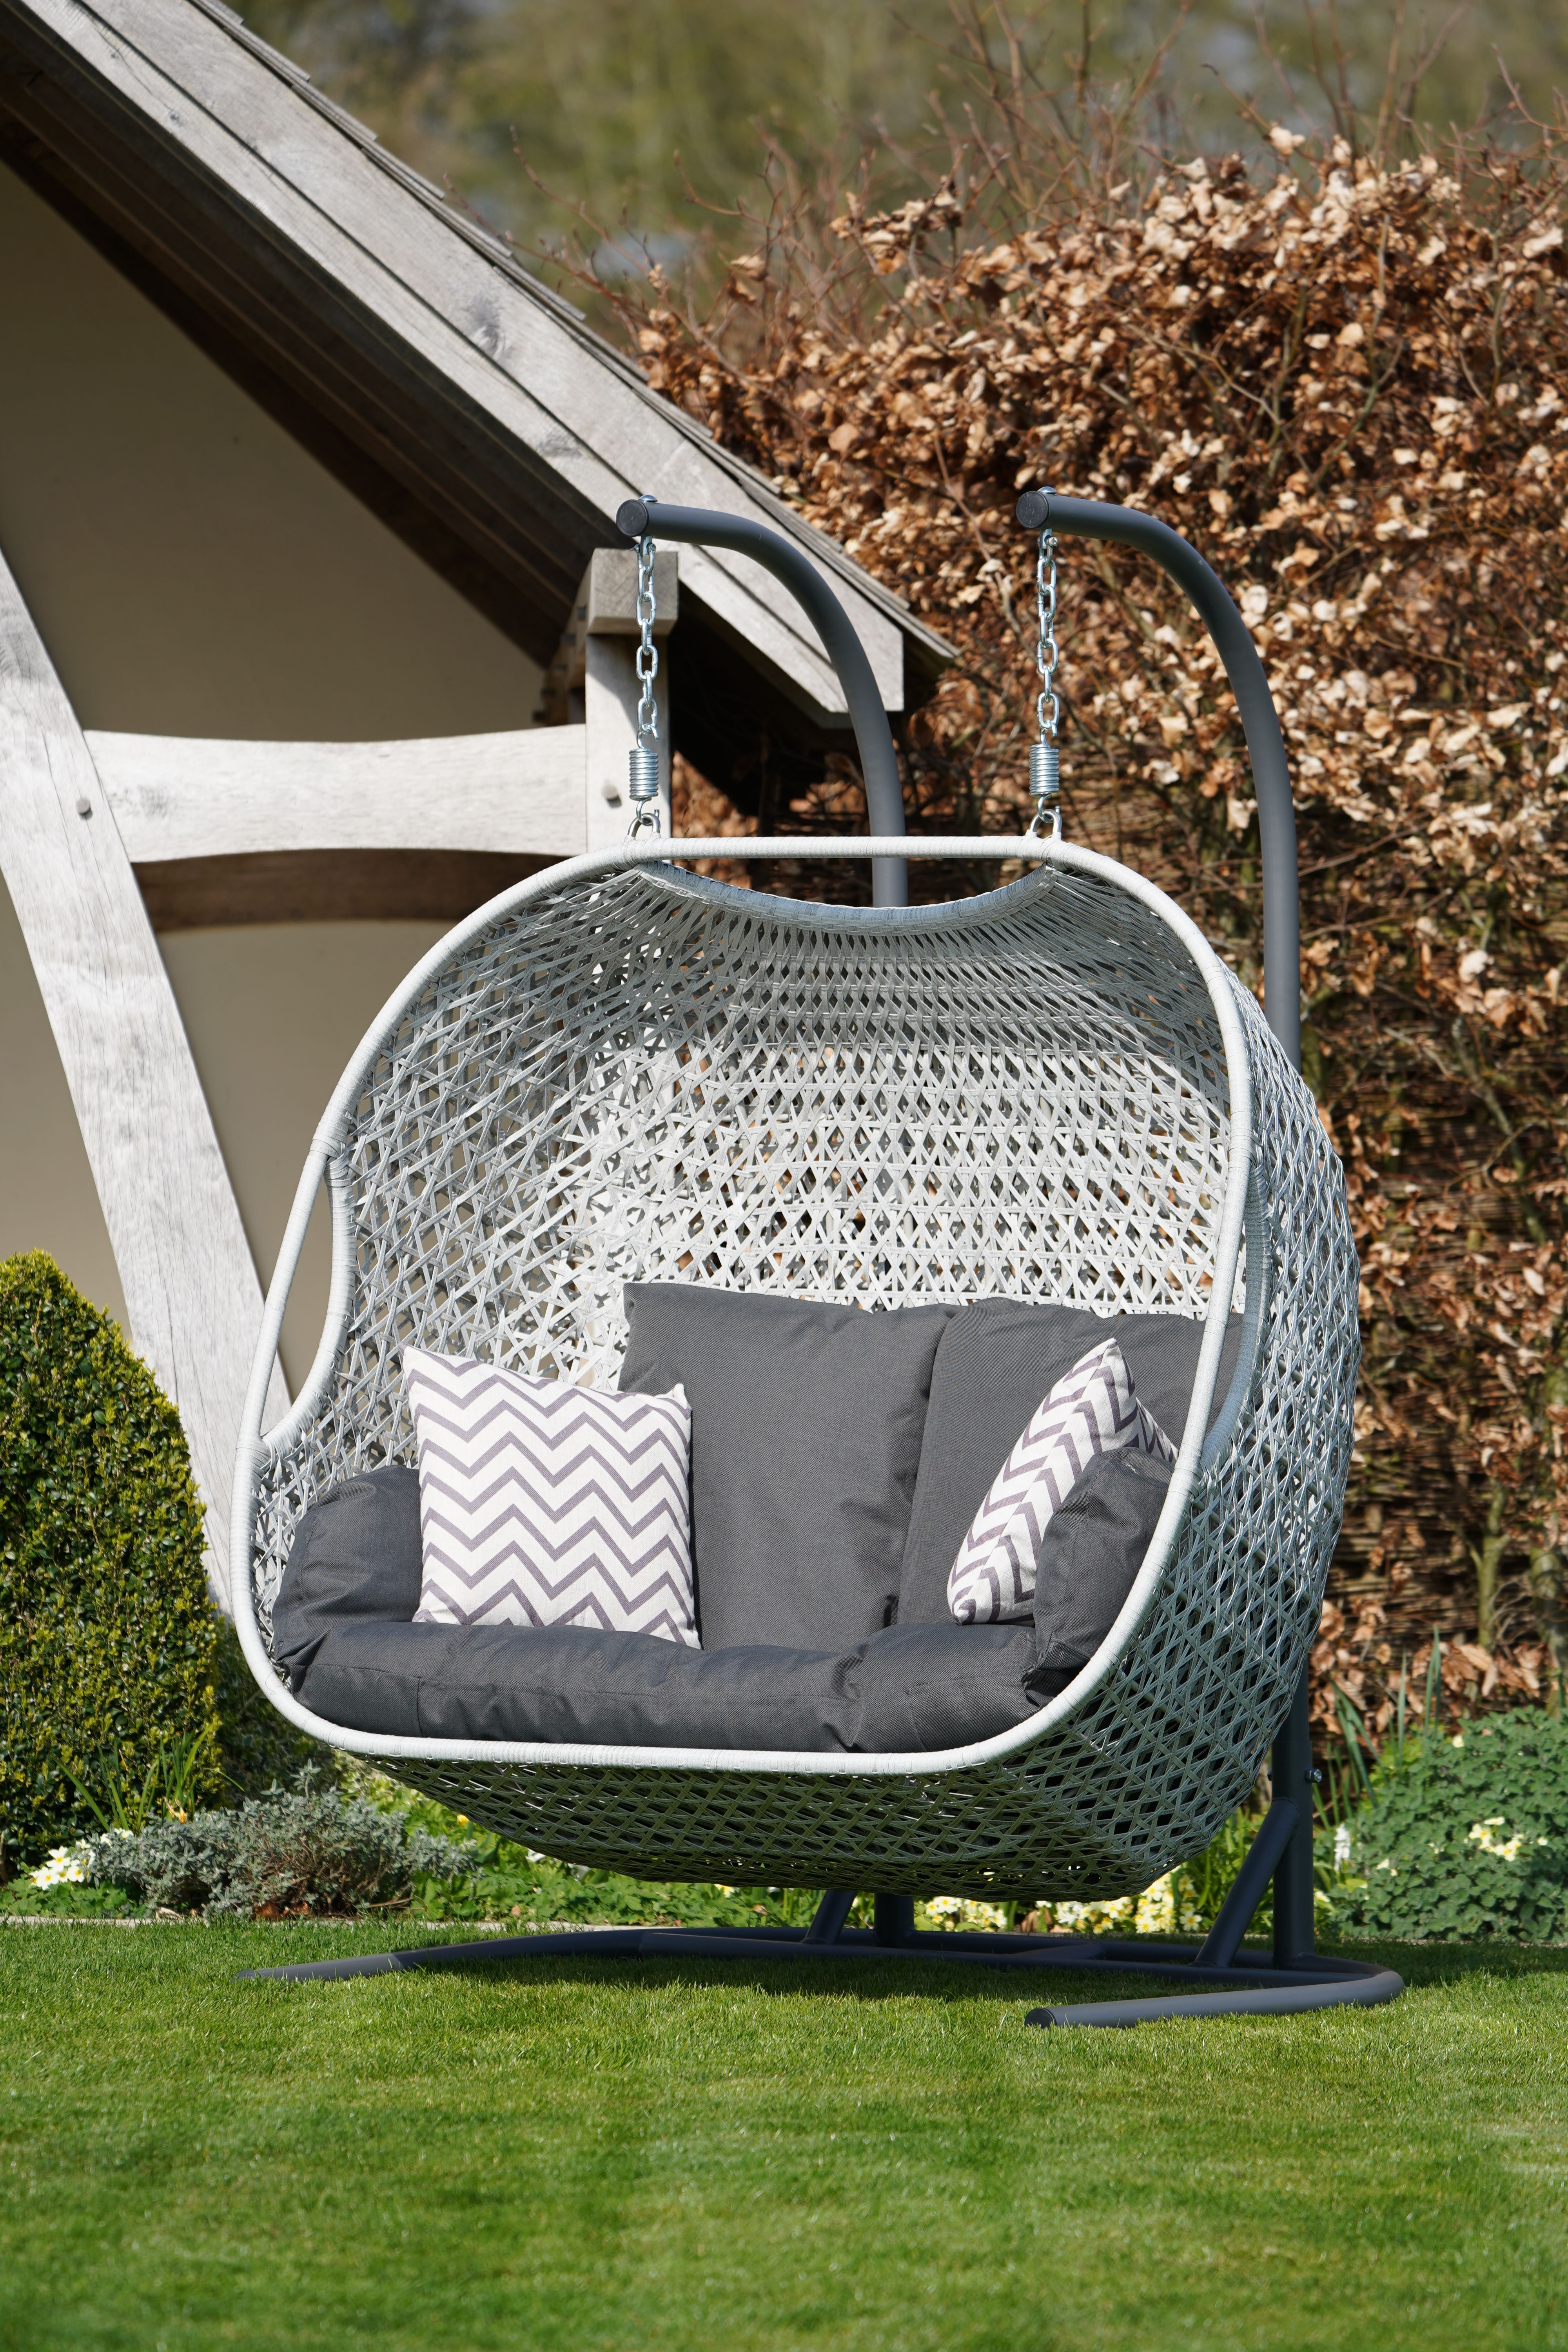 Bramblecrest Monterey Double Hanging Cocoon with Season-Proof Cushions - Dove Grey